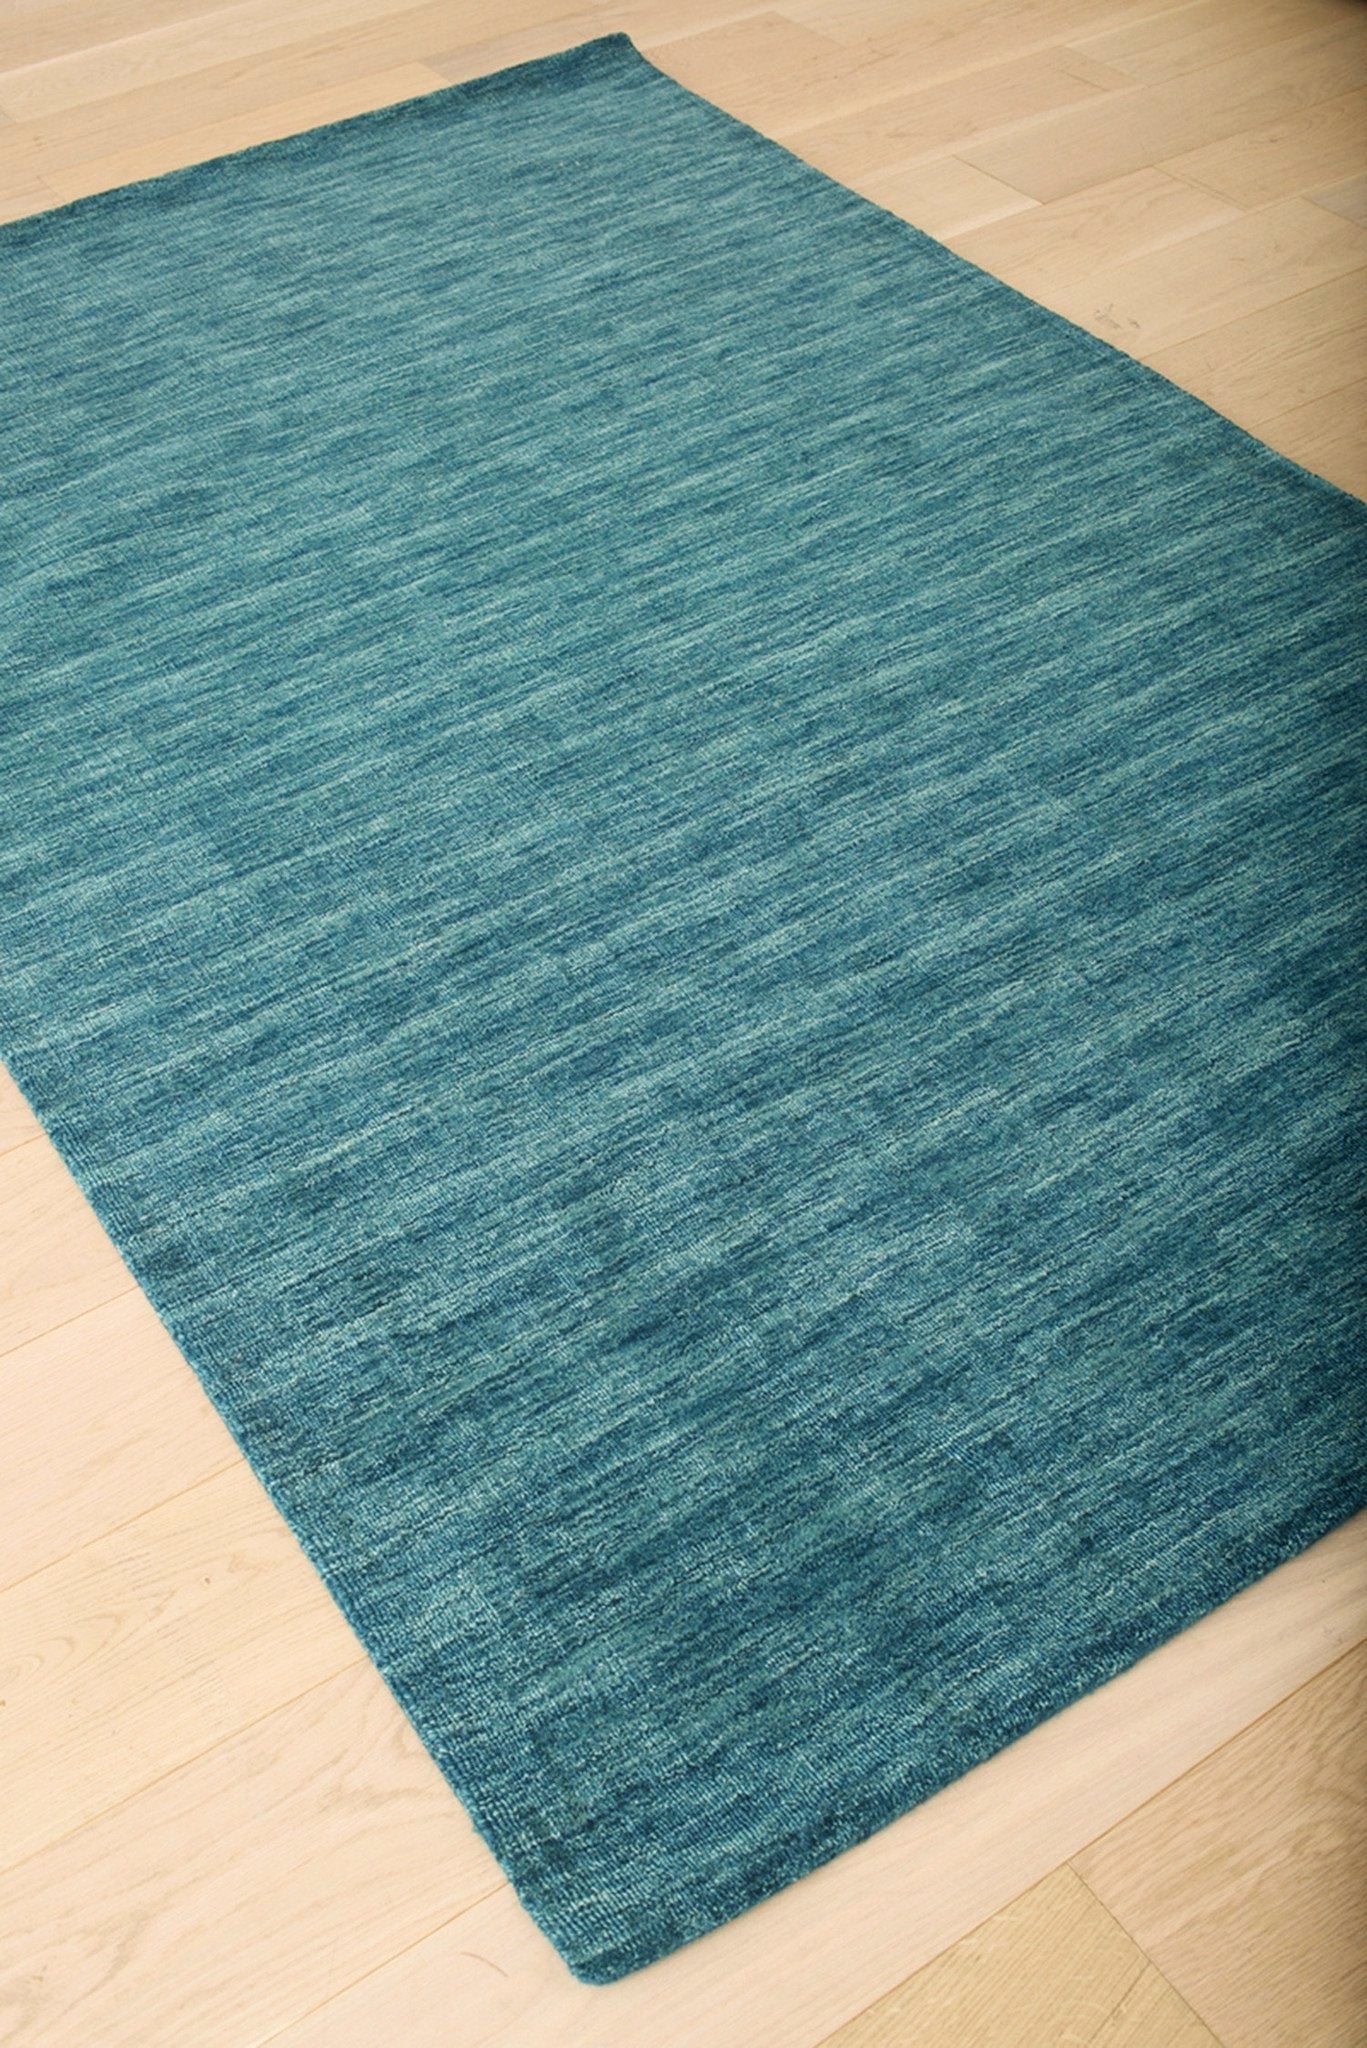 Modern Faded Teal Blue Wool Area Rug